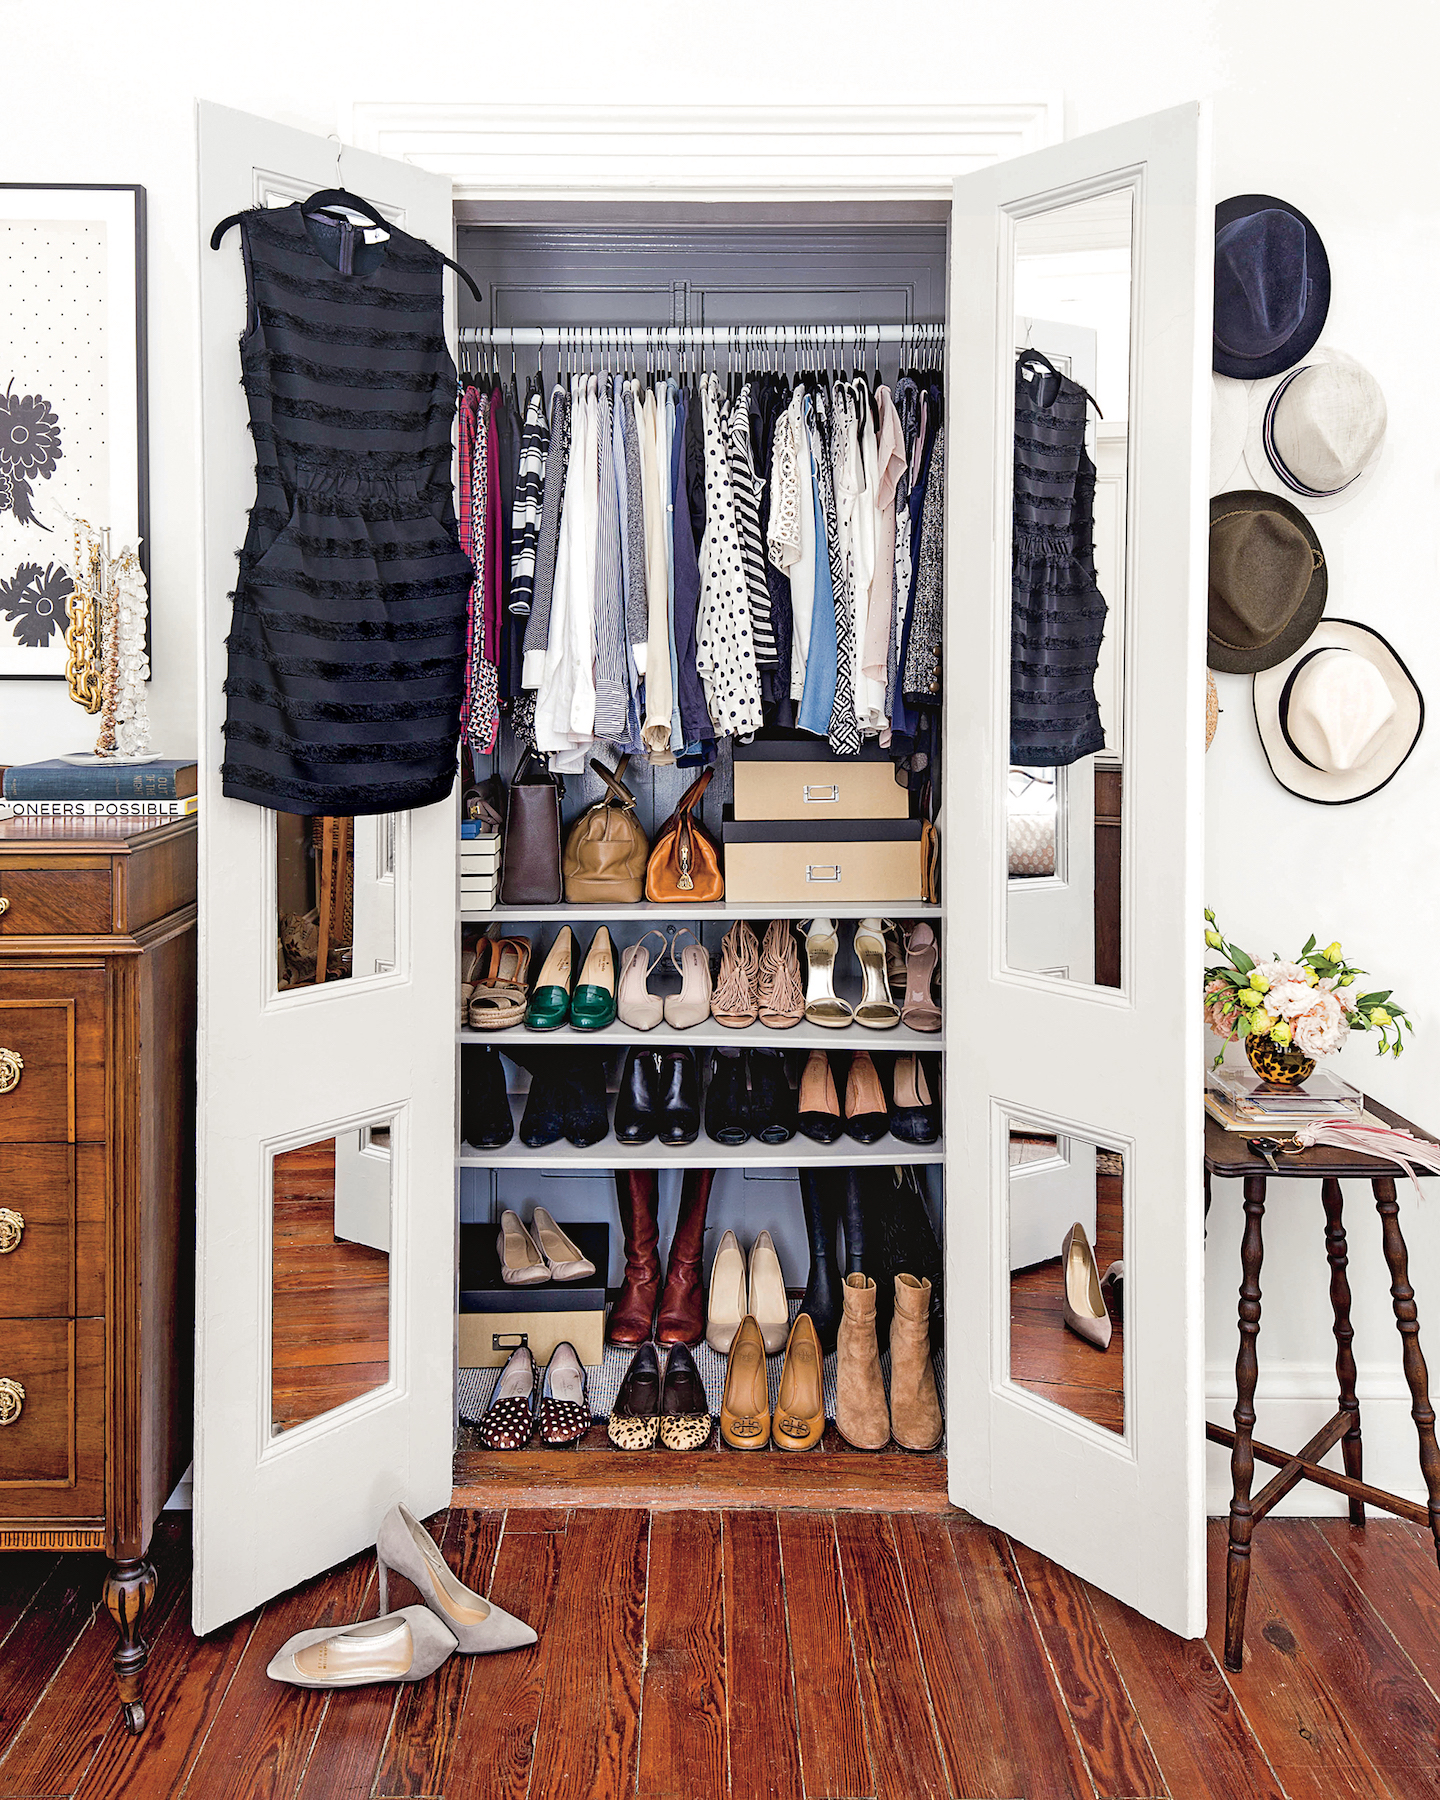 Picture of: 5 Genius Organization Tips To Steal From The Tidiest Closets Real Simple